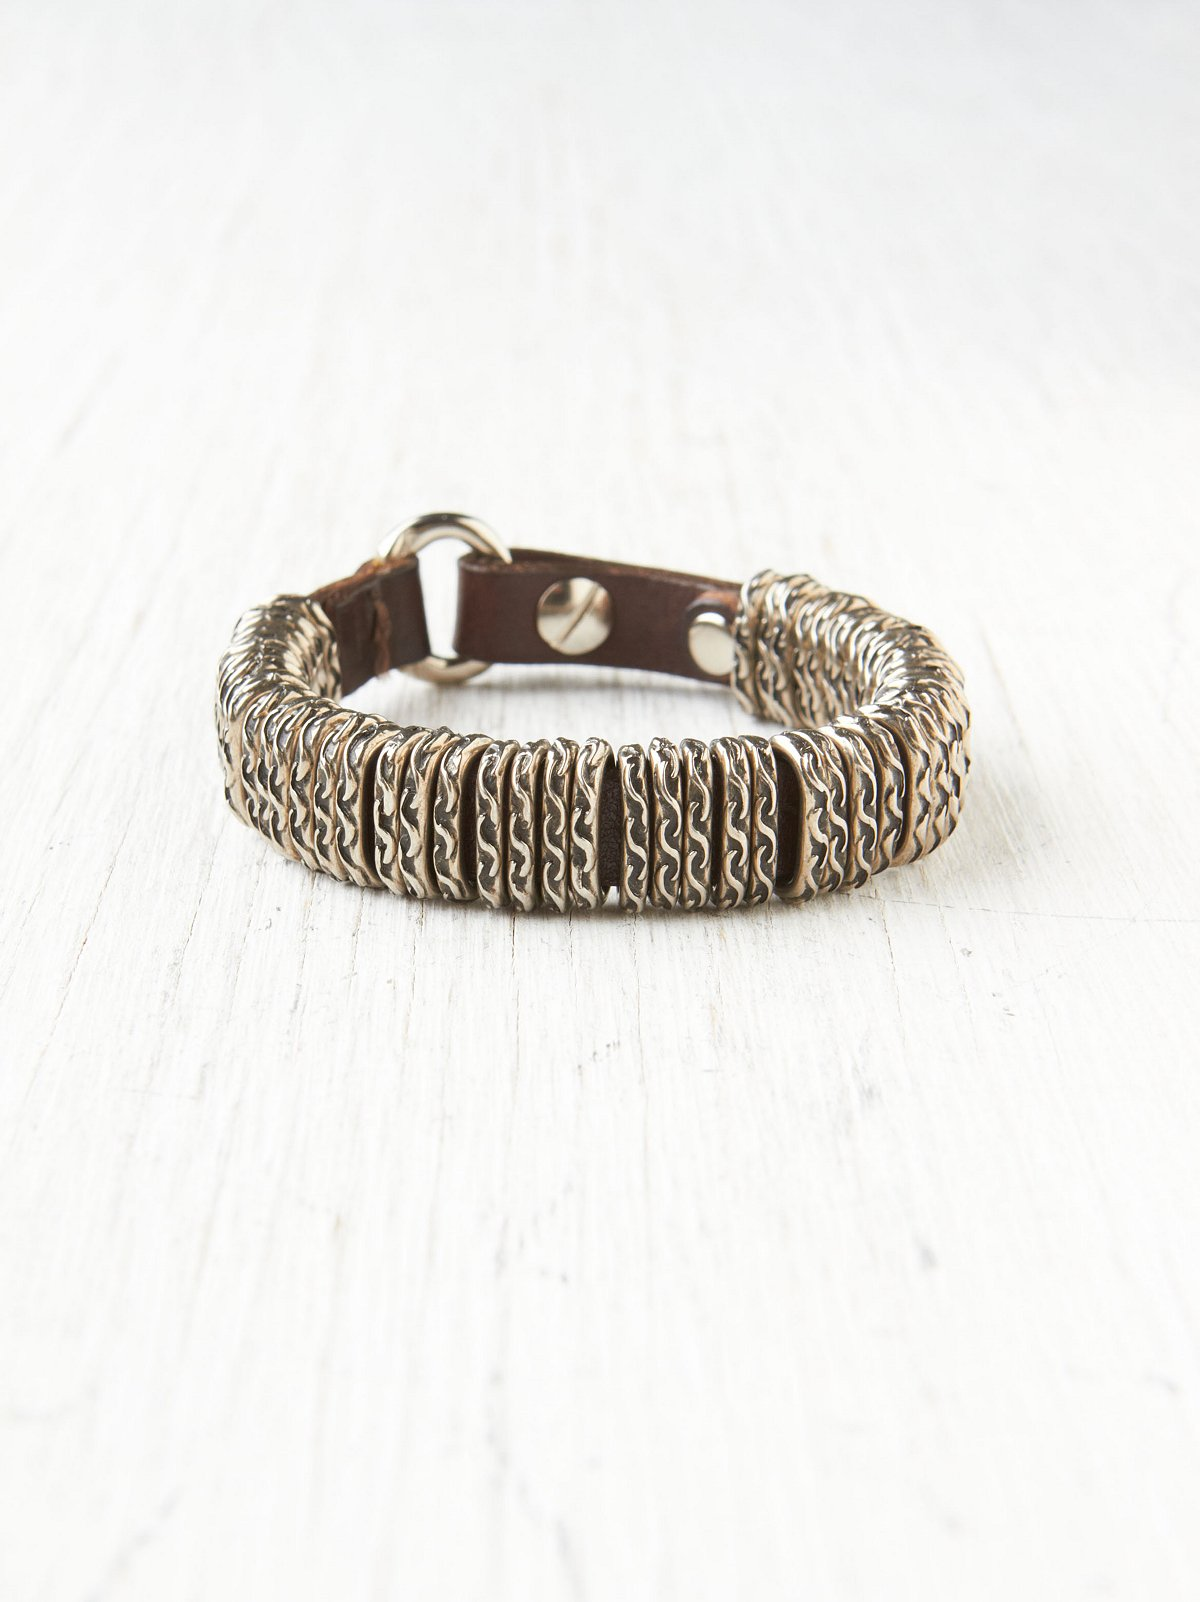 Coiled Leather Bracelet